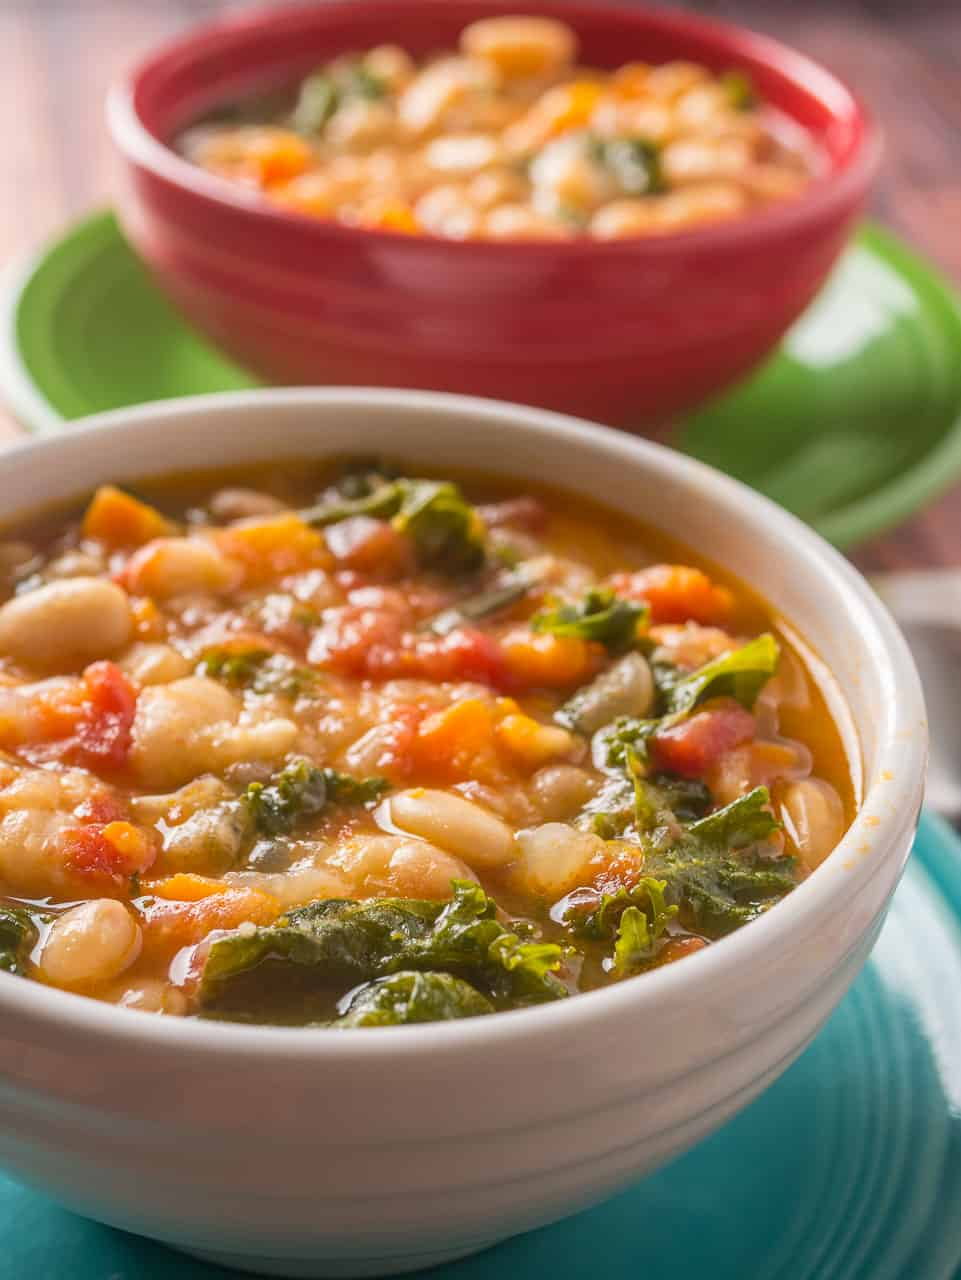 Two bowls of Tuscan bean soup on colorful plates